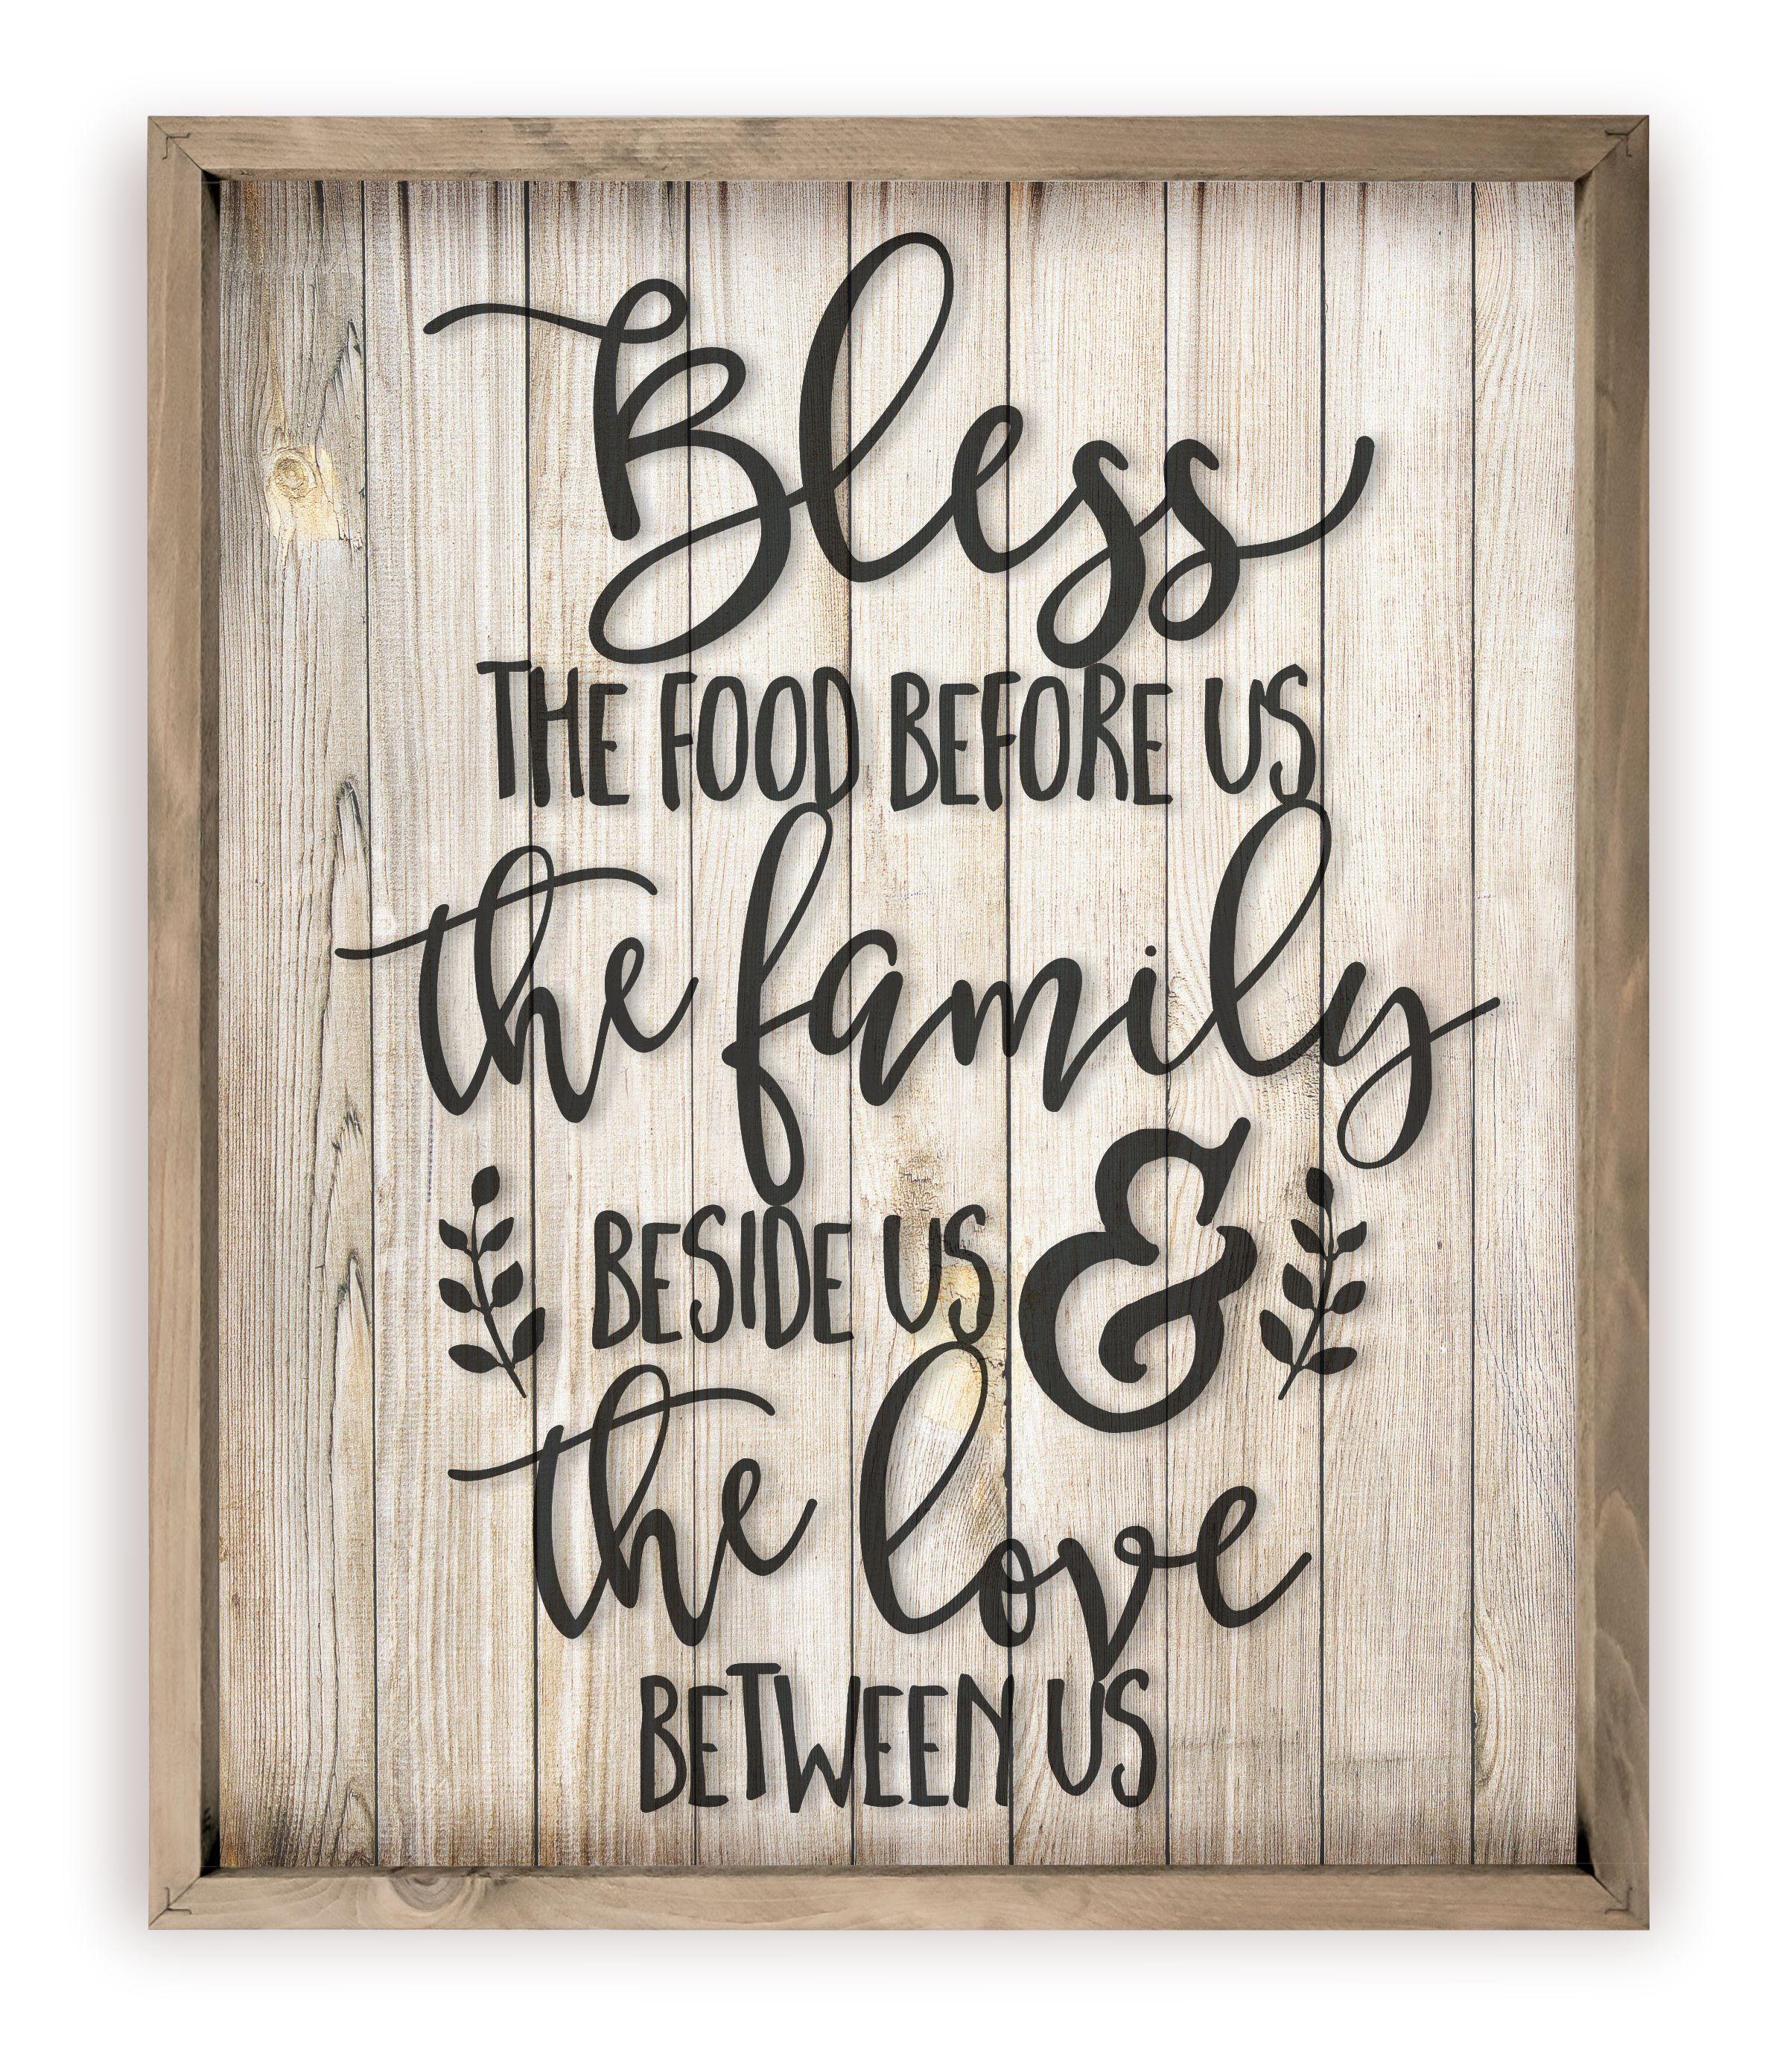 tp1215-39-fr-bless-the-food-before-us.jpg